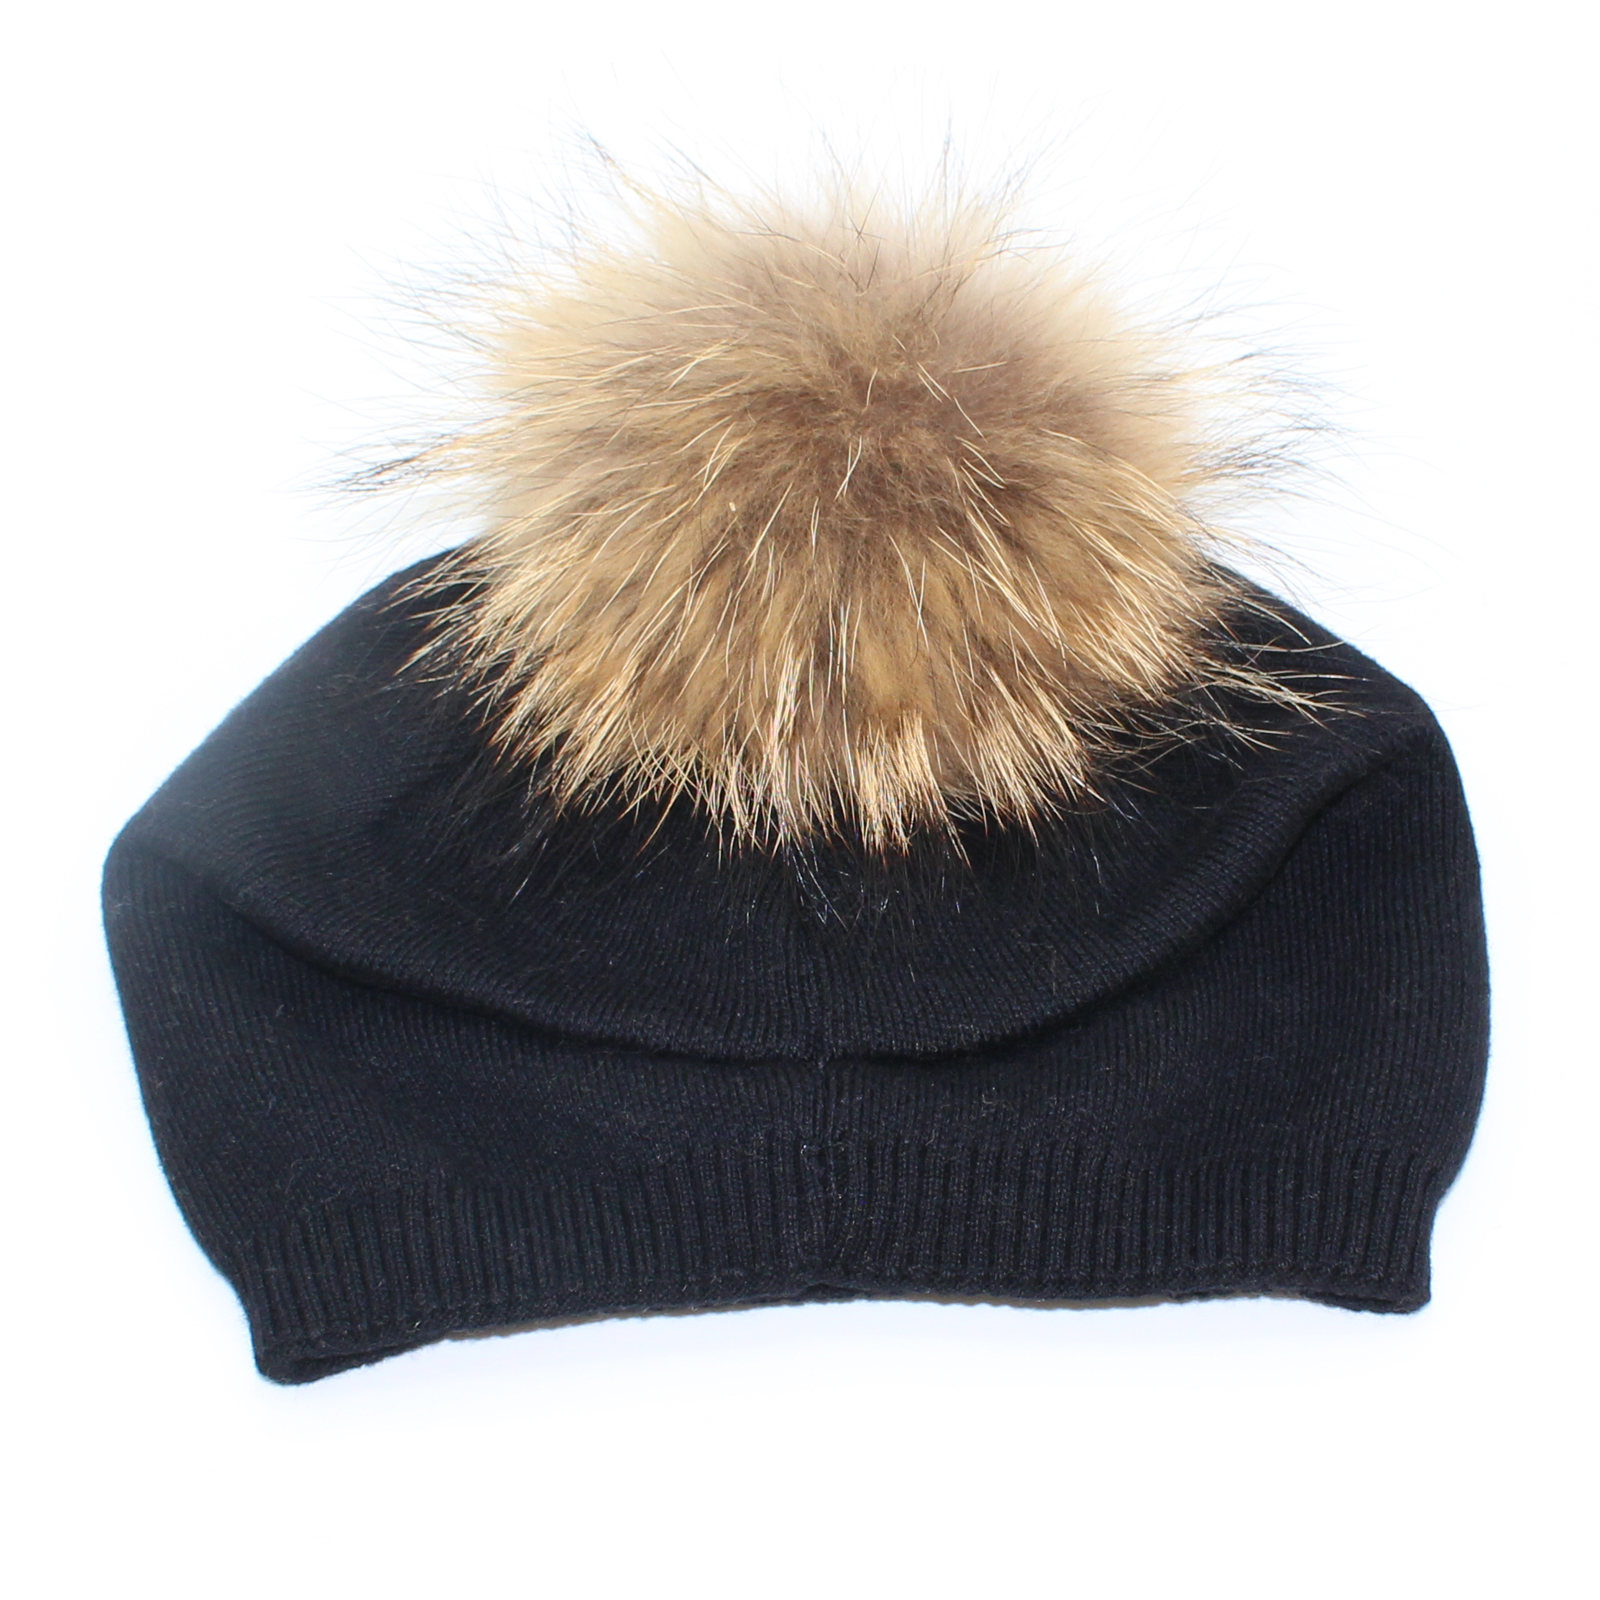 6acb644ea66 Pungles - Online Store - Knitted Cashmere Removable Fur Pompom ...